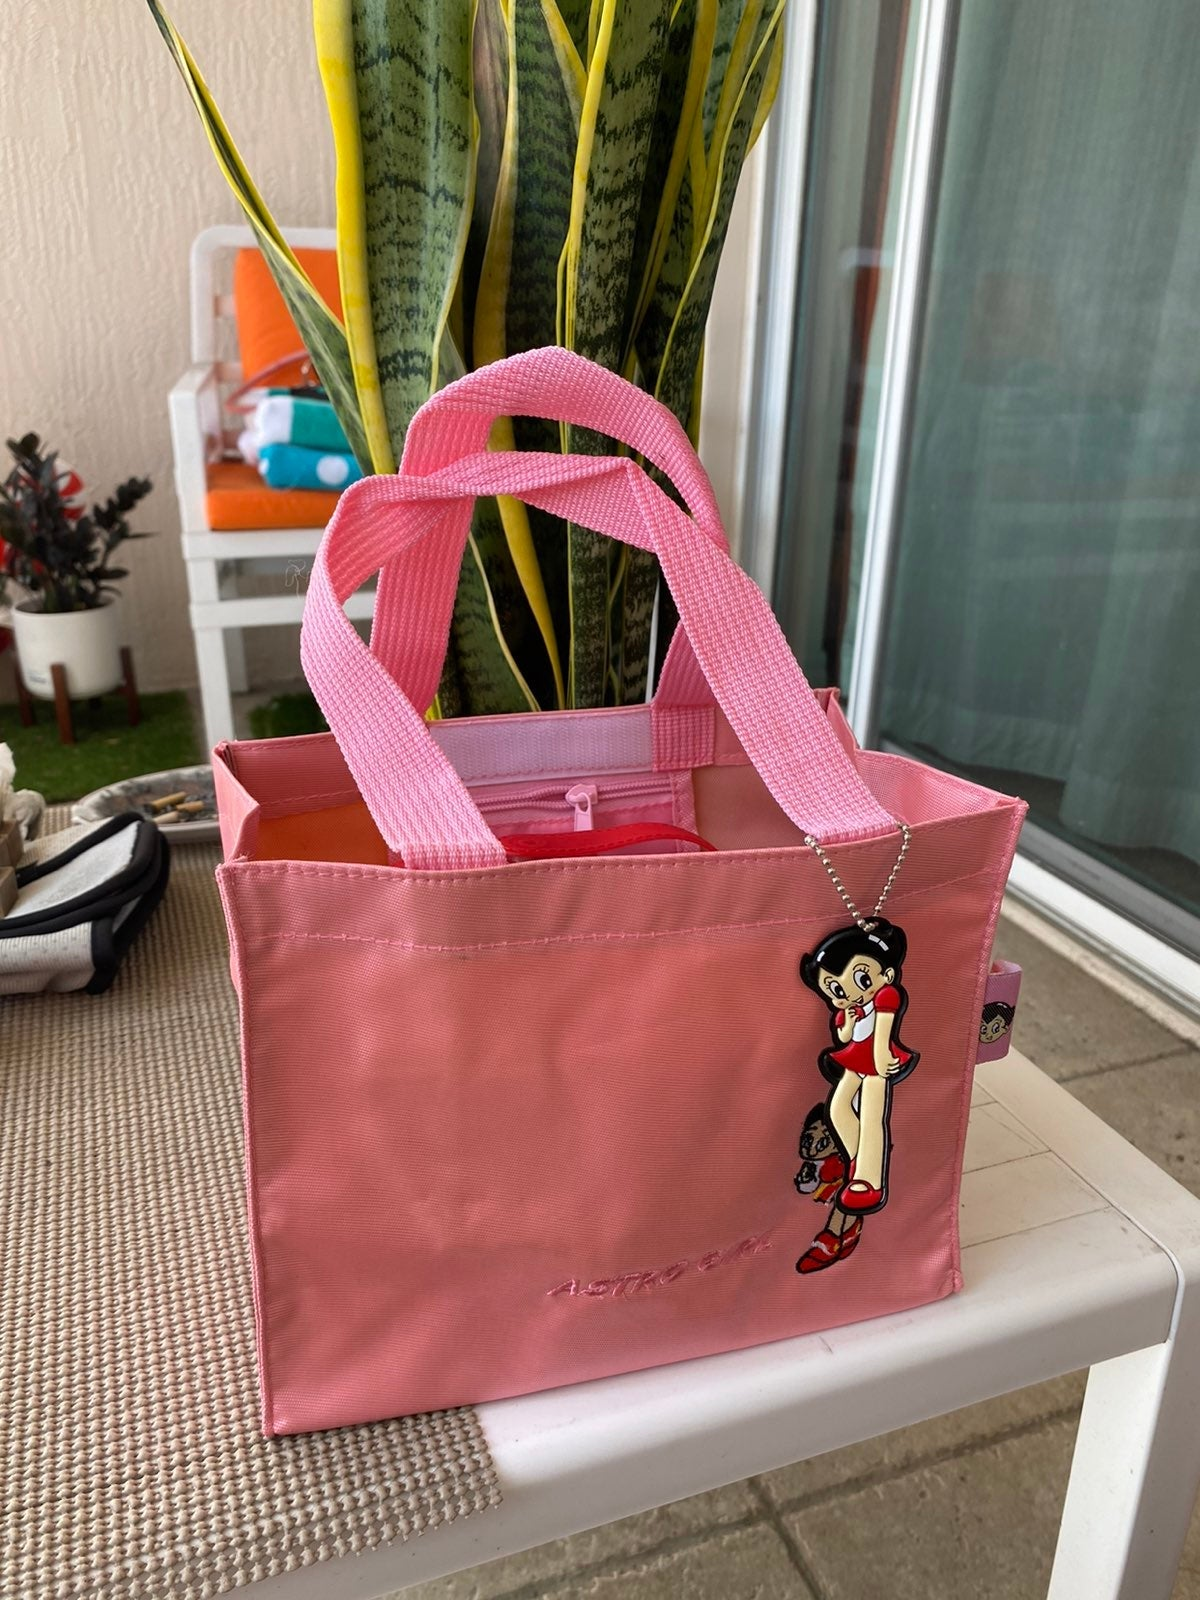 Astro girl lunch bag